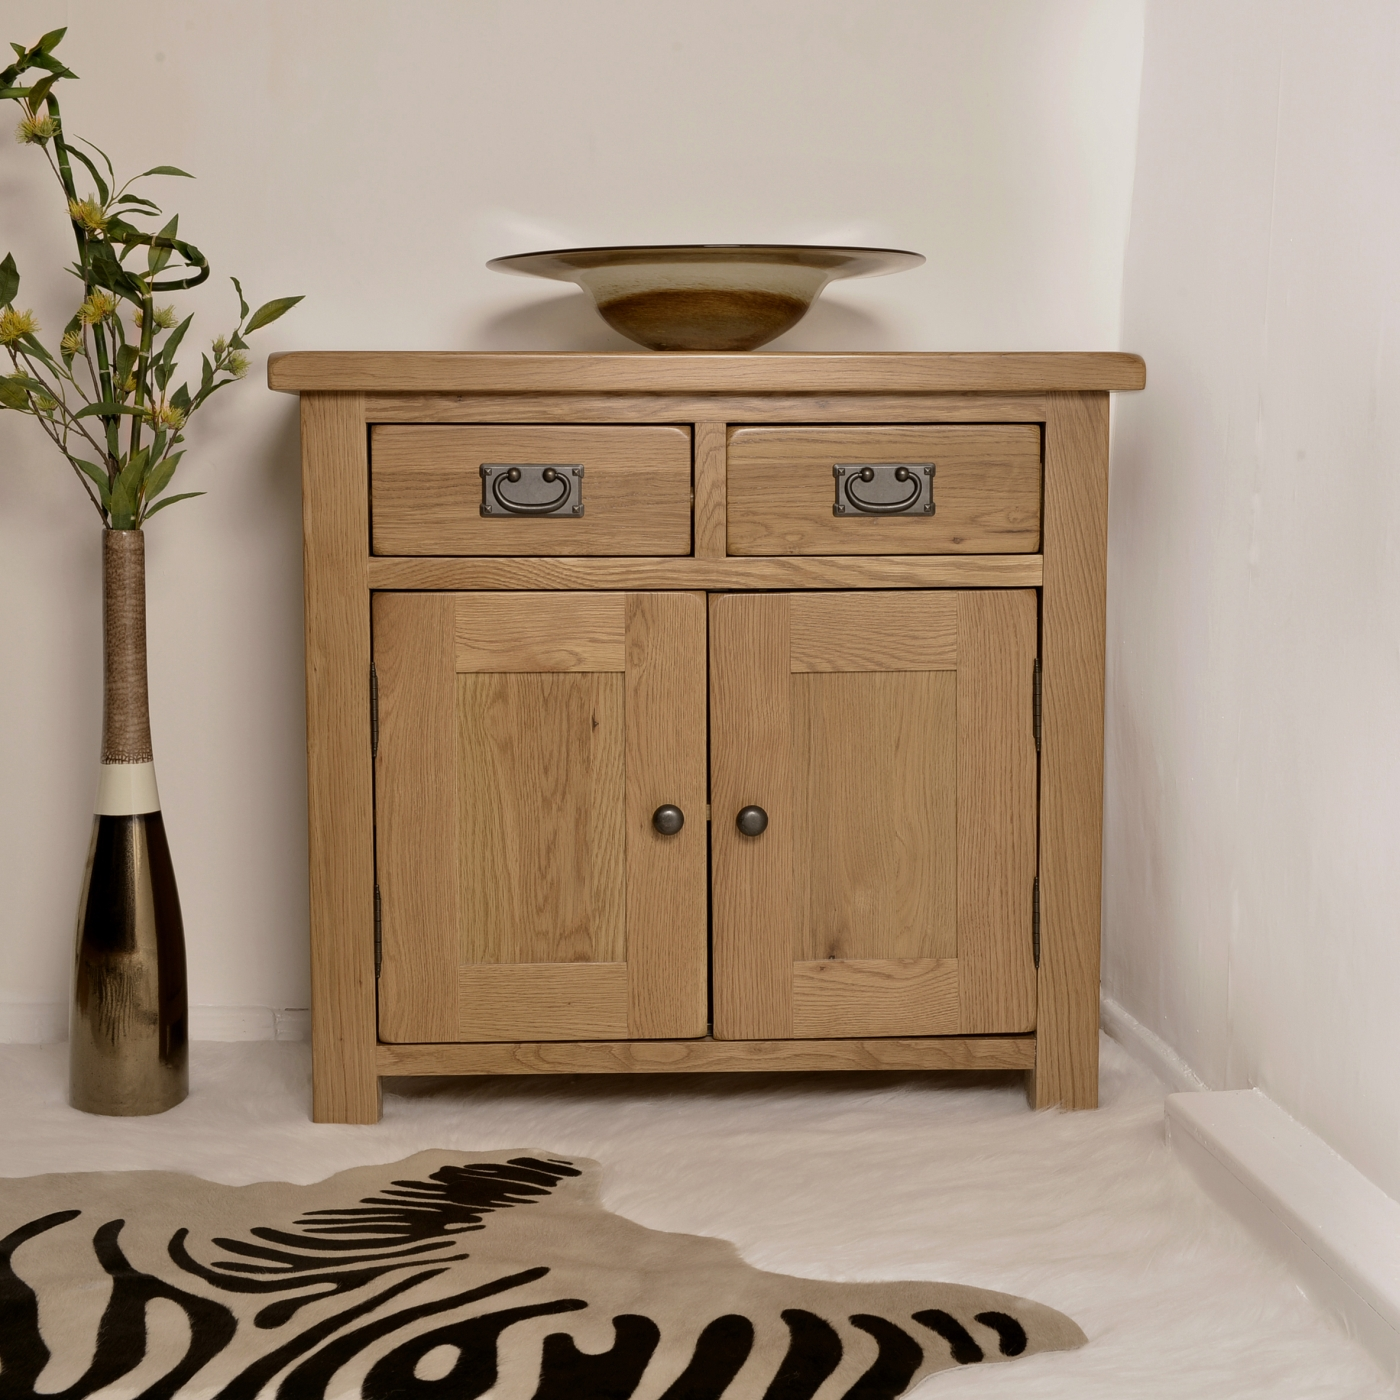 Solid Oak Sideboard Small Buffet Dining Living Room Rustic Furniture EBay